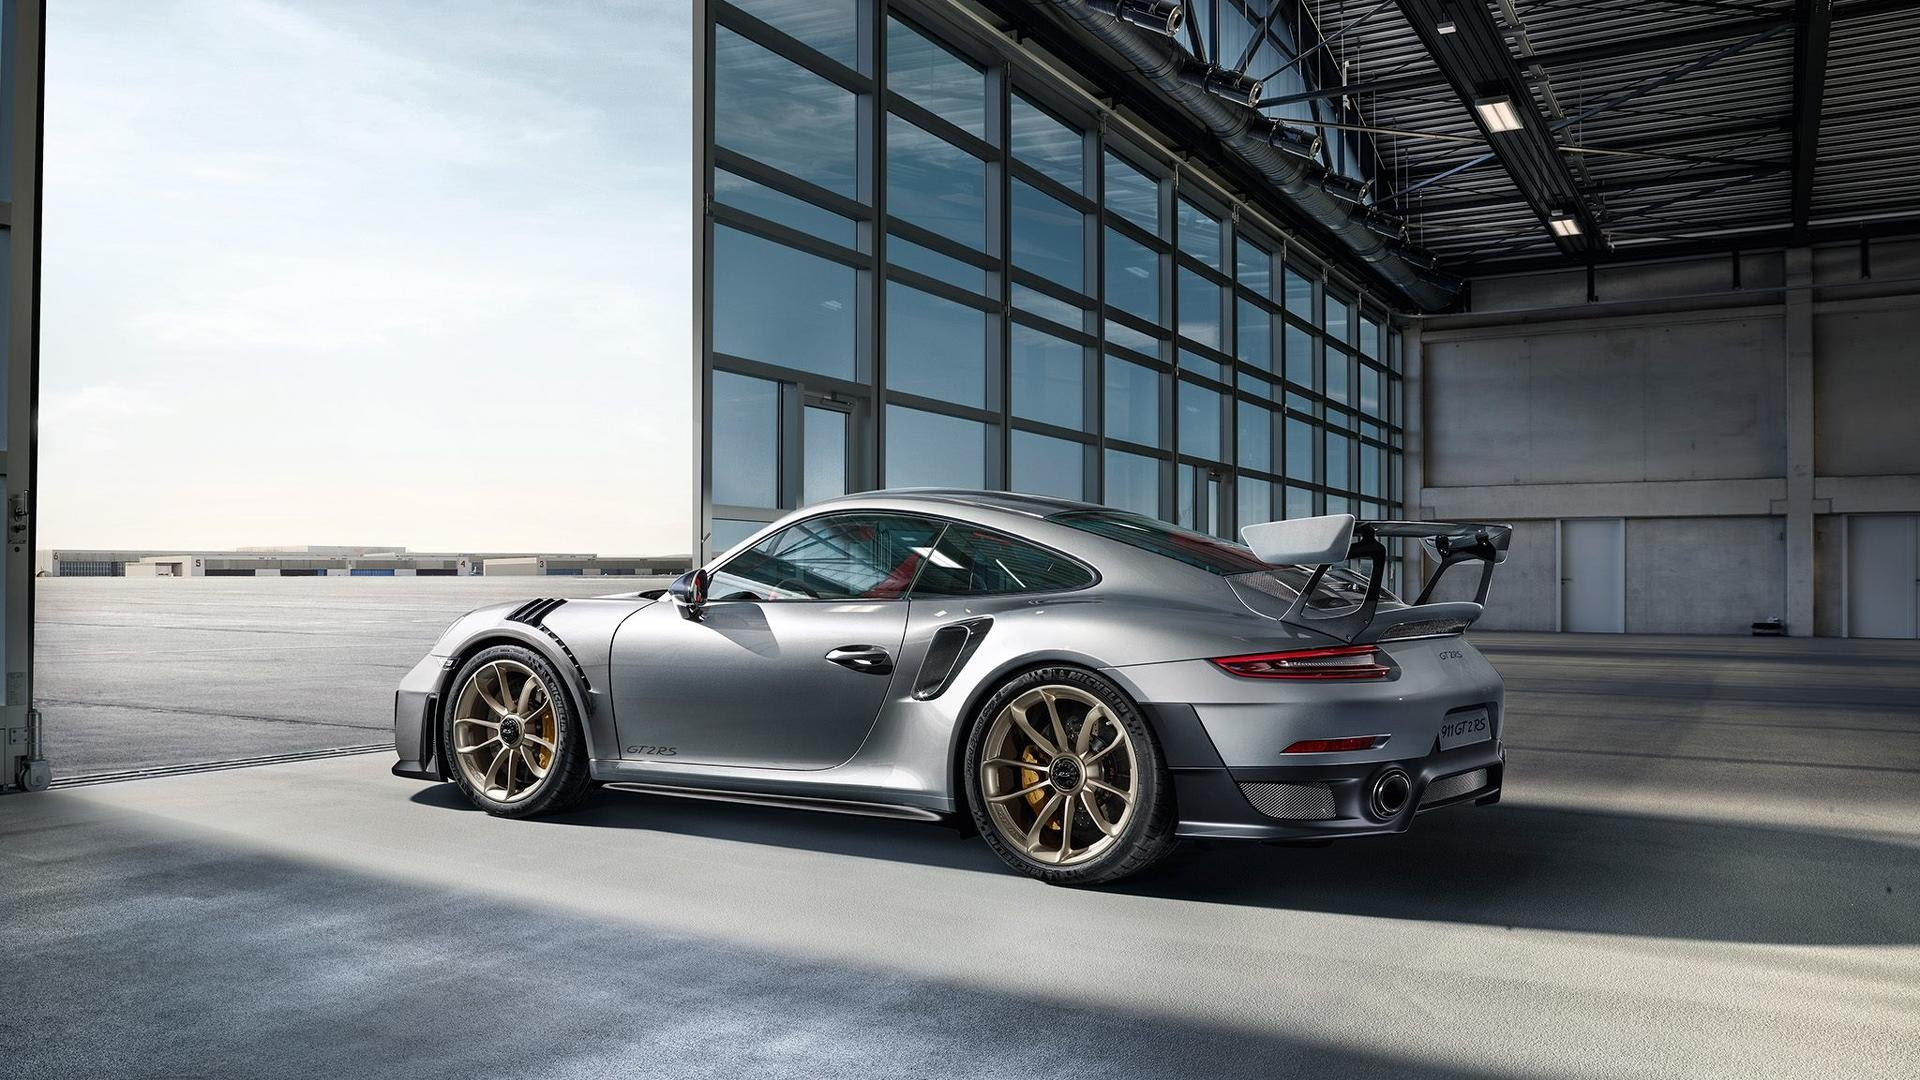 Porsche 911 Hd Wallpapers 83 Images